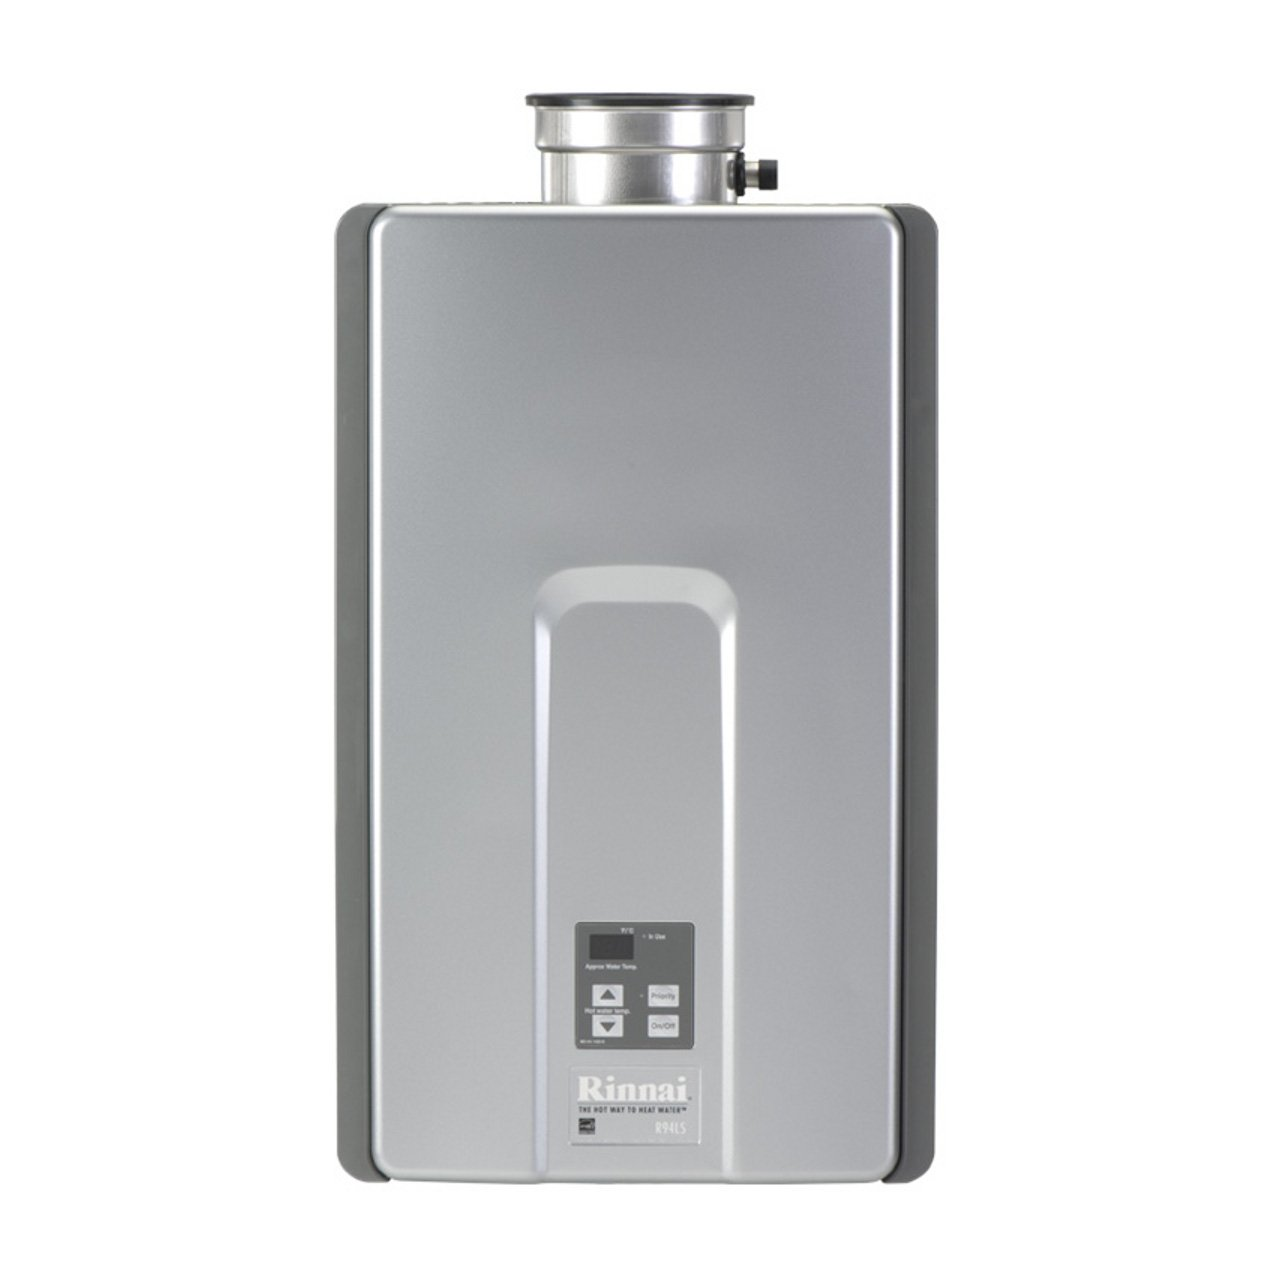 Top 5 Gas Water Heater Reviews 2017 for Household Use